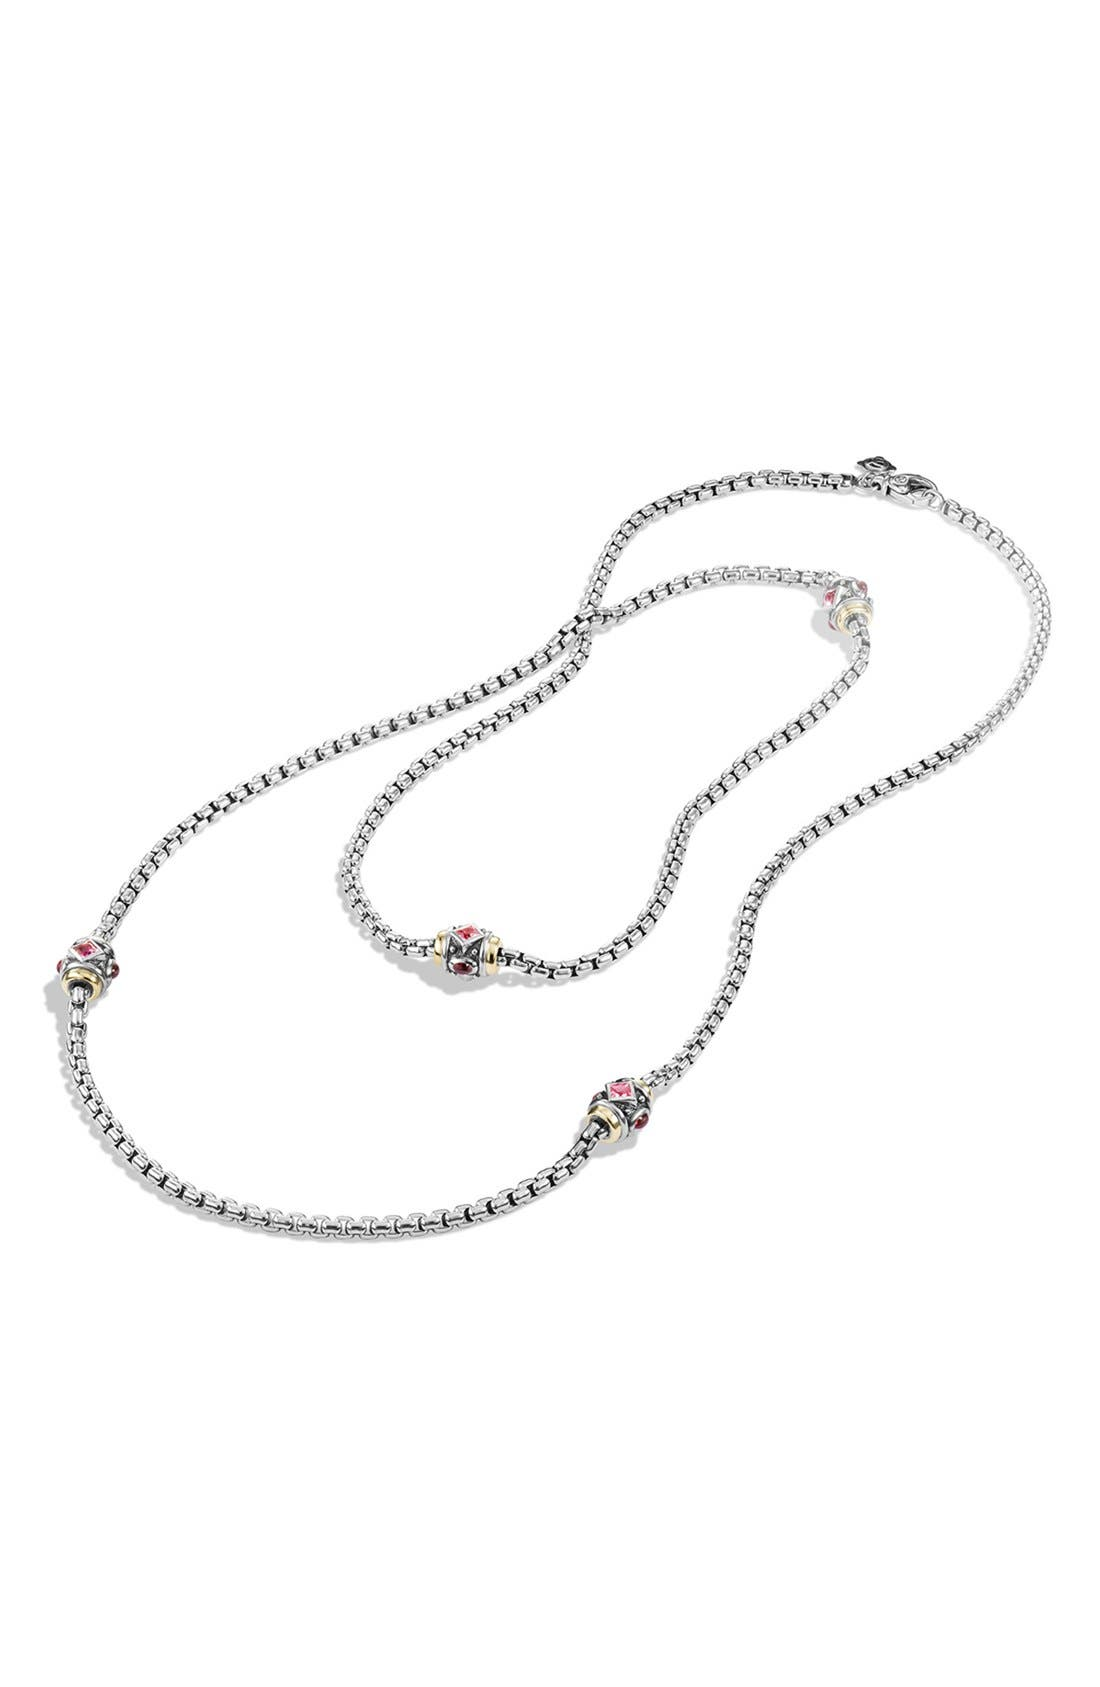 'Renaissance' Necklace with Semiprecious Stone and 18k Gold,                             Alternate thumbnail 5, color,                             650